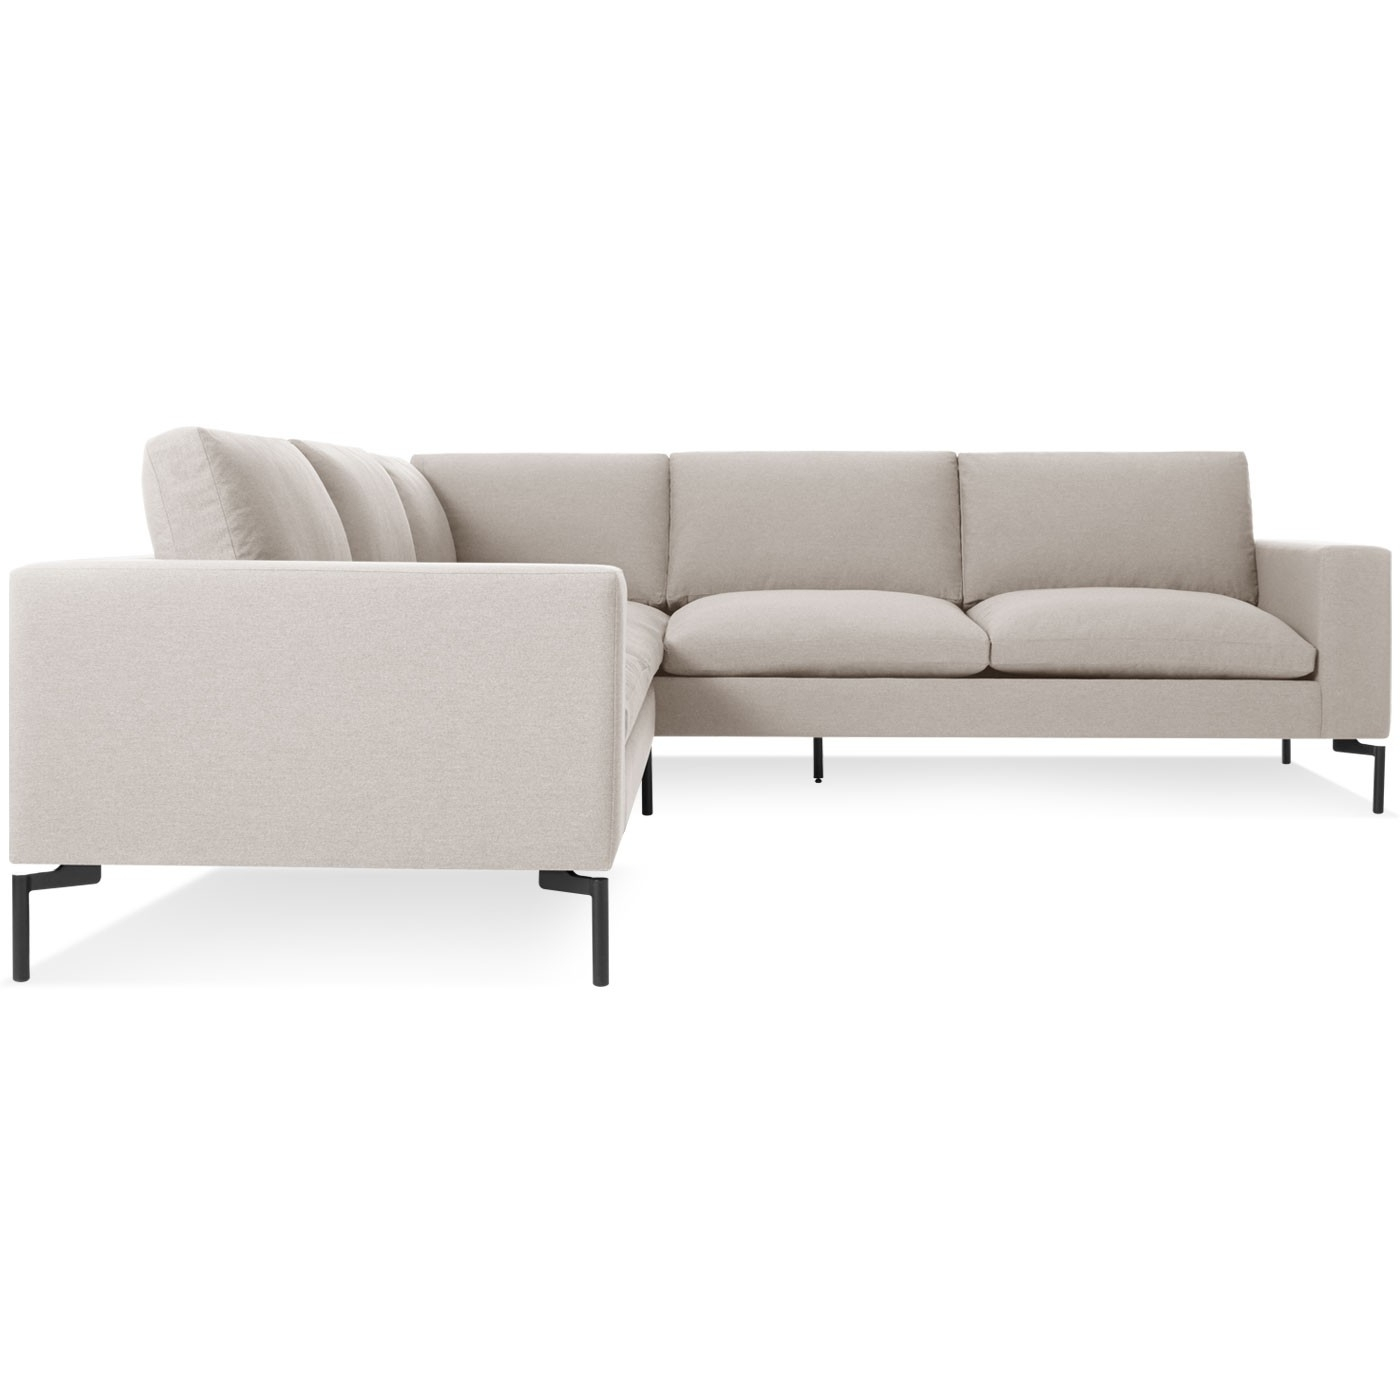 New Standard Small Sectional Sofa – Modern Sofas (View 10 of 20)